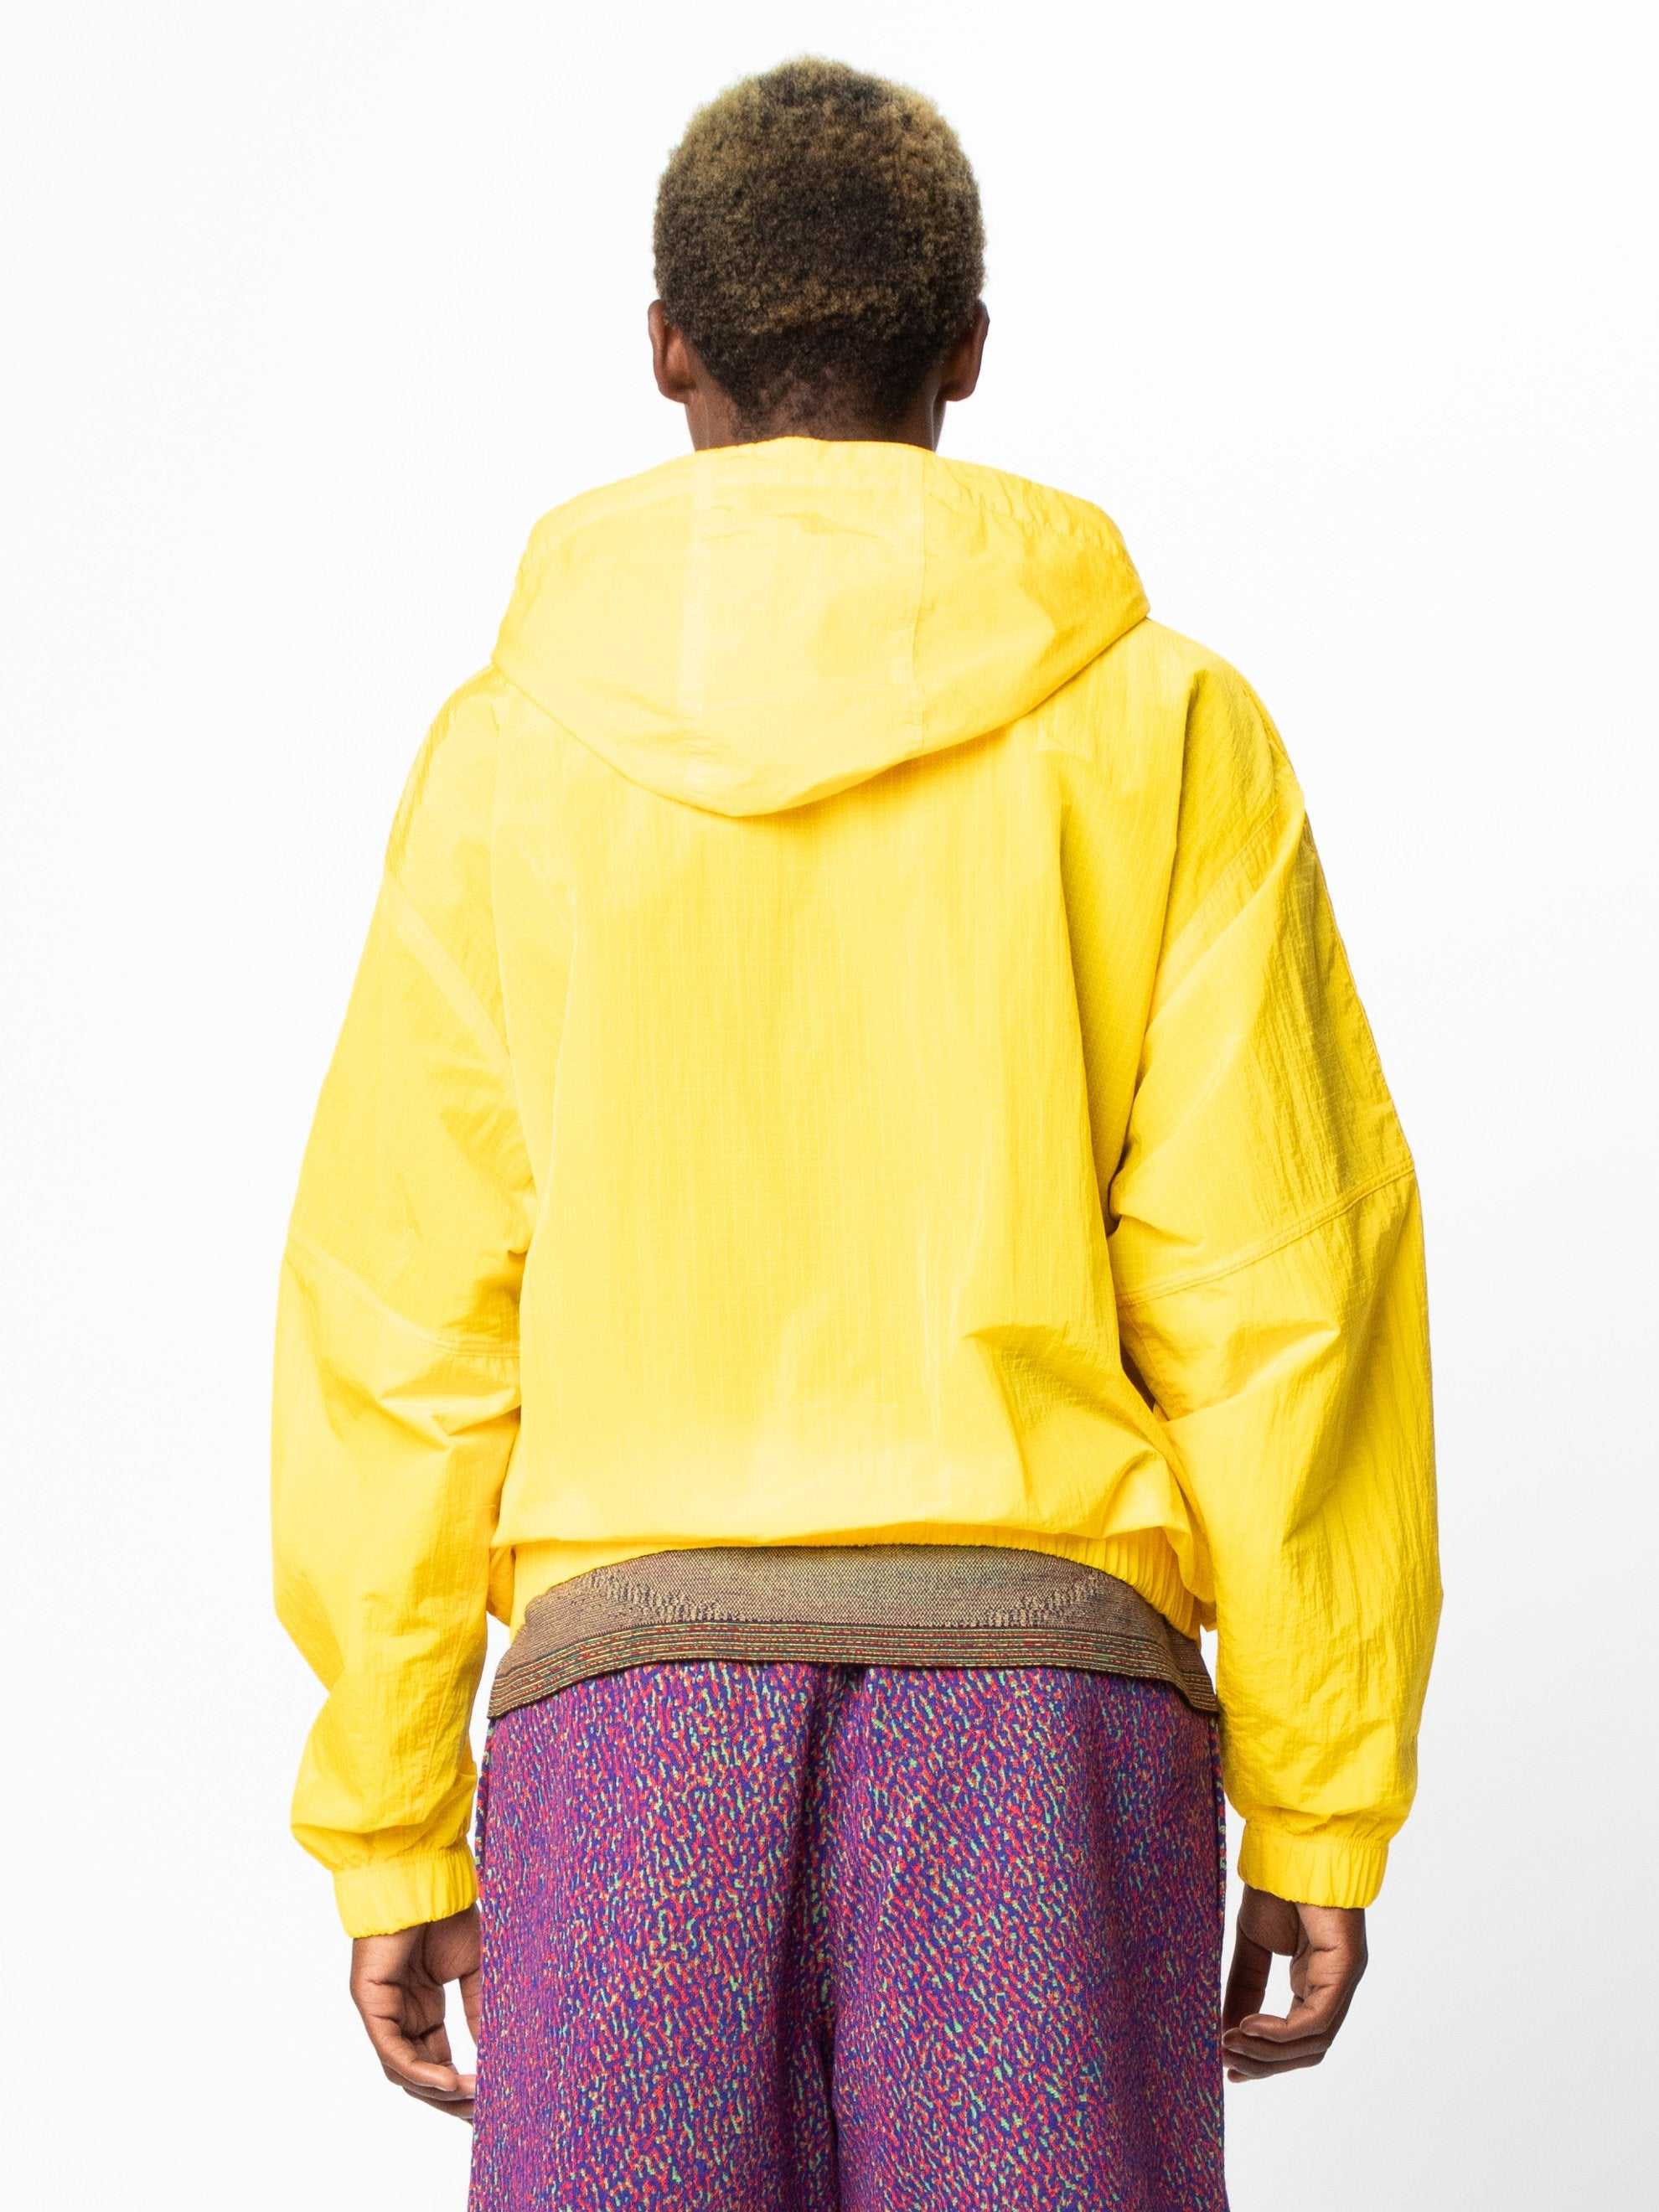 Opti Yellow Nike Made In Italy Track Jacket 6